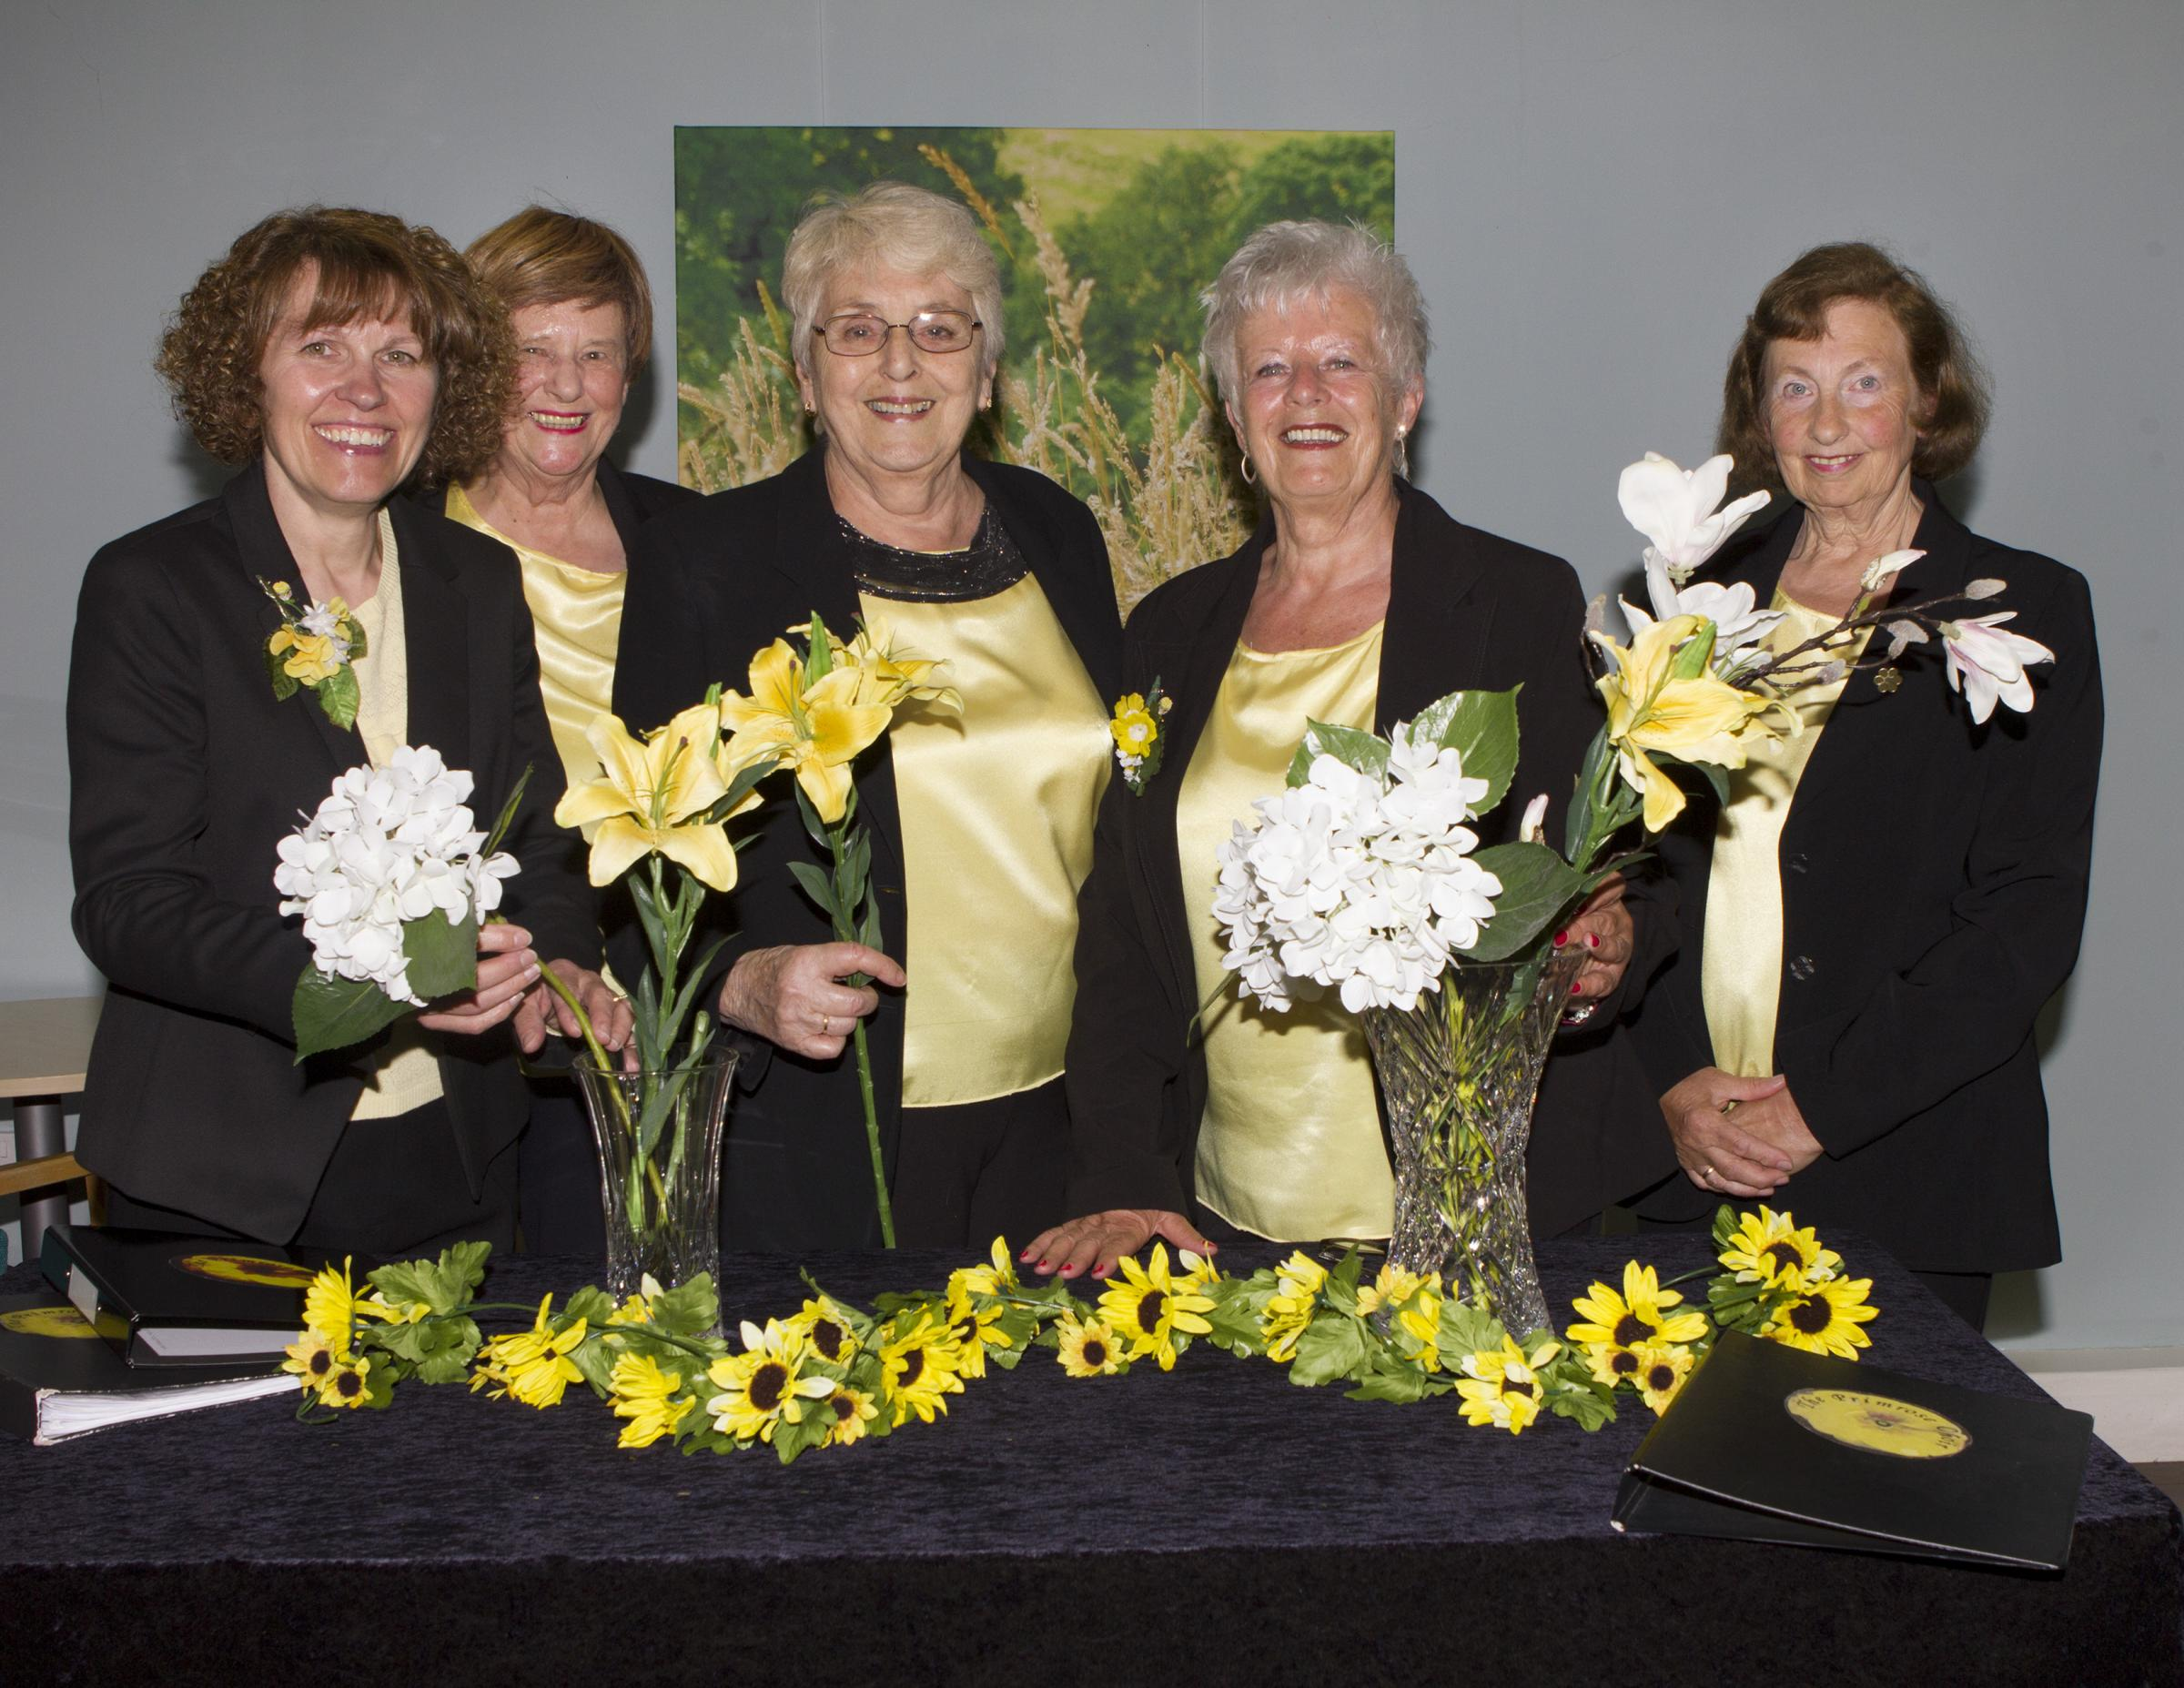 (l-r) Wendy Worthing, Helen Eyre, Kay Hadley (Musical Director), Lyn Fraser and Janet Thay